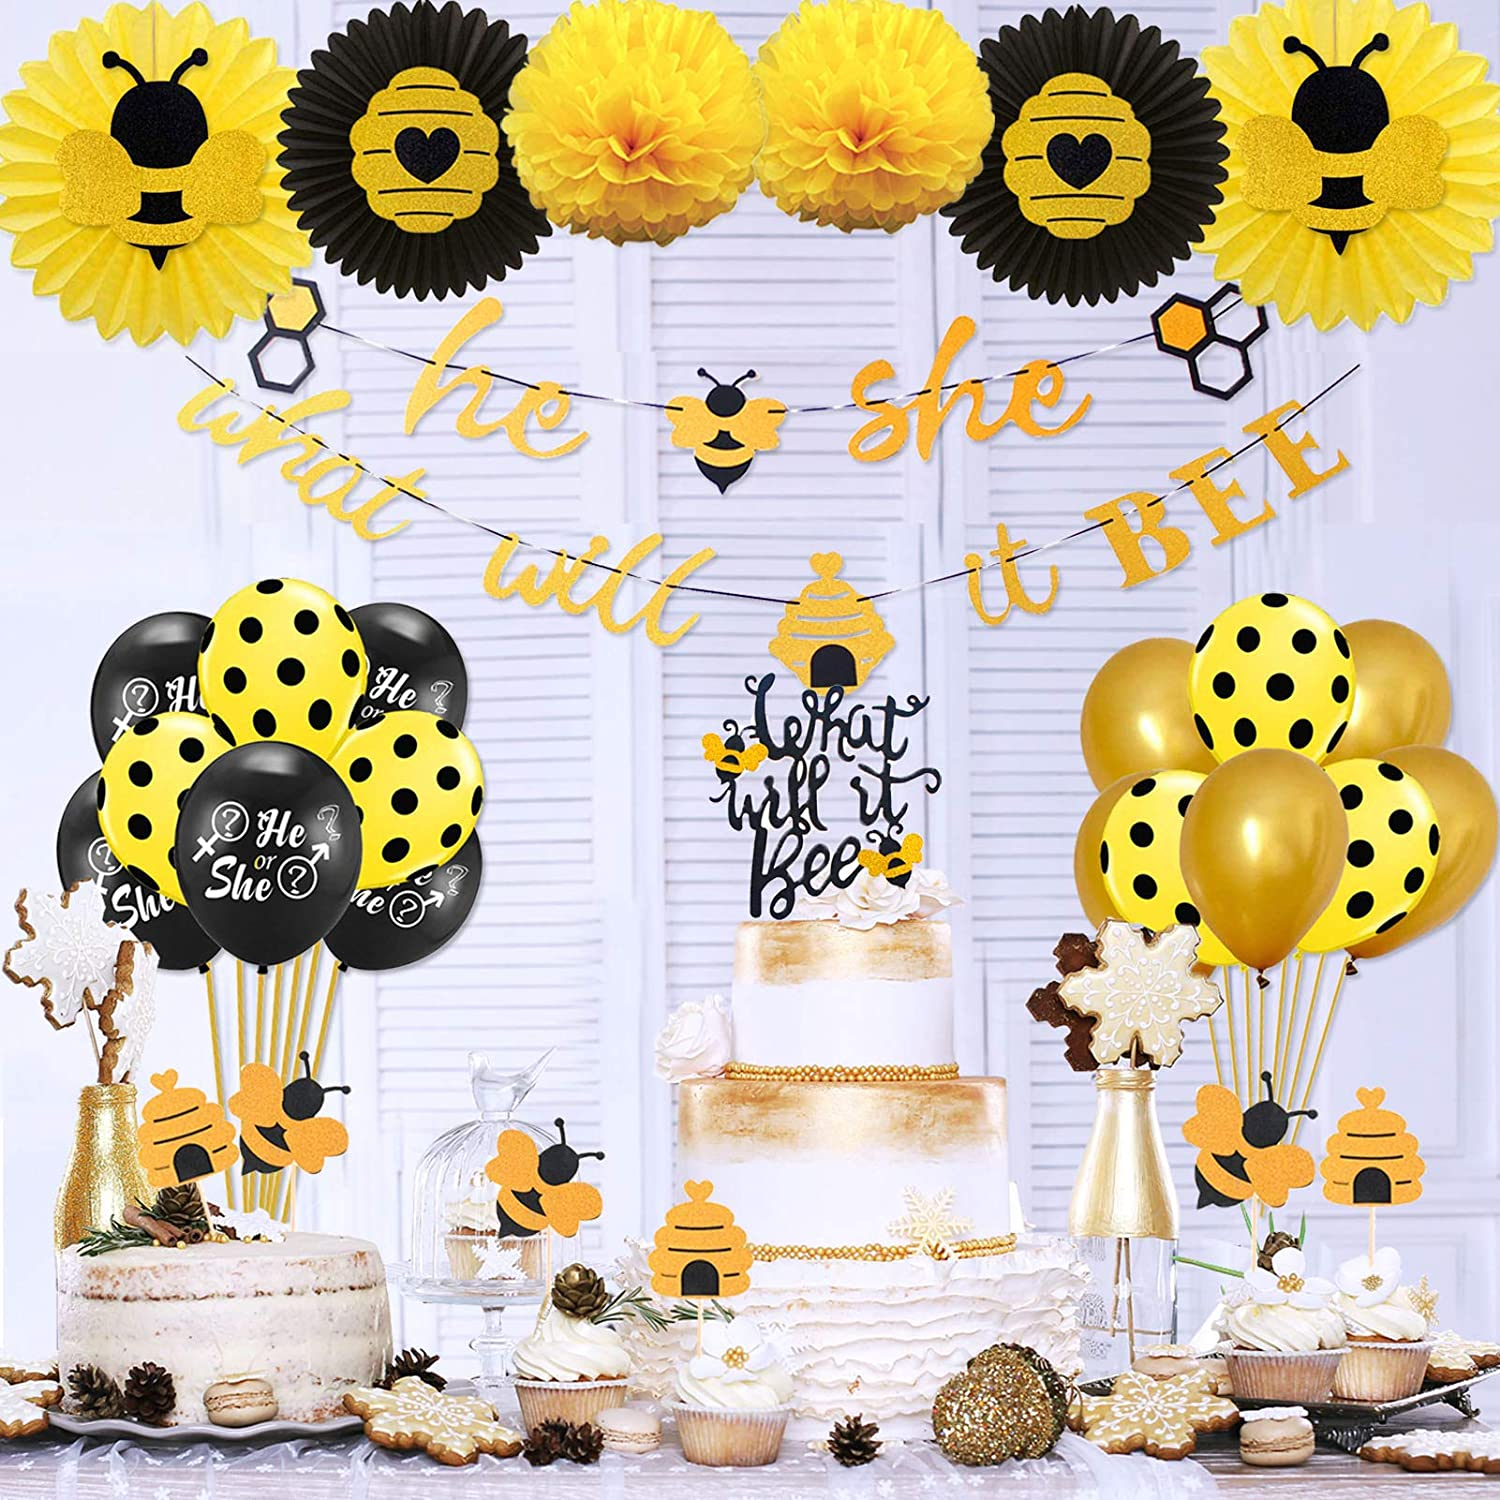 What Will It Bee Gender Reveal Party Supplies Decorations by KeaParty, Bee Baby Shower Decorations, Honey Bee Cupcake Toppers, He or She Balloons, He or She Banner, Tissue Paper Fans, Pom Poms